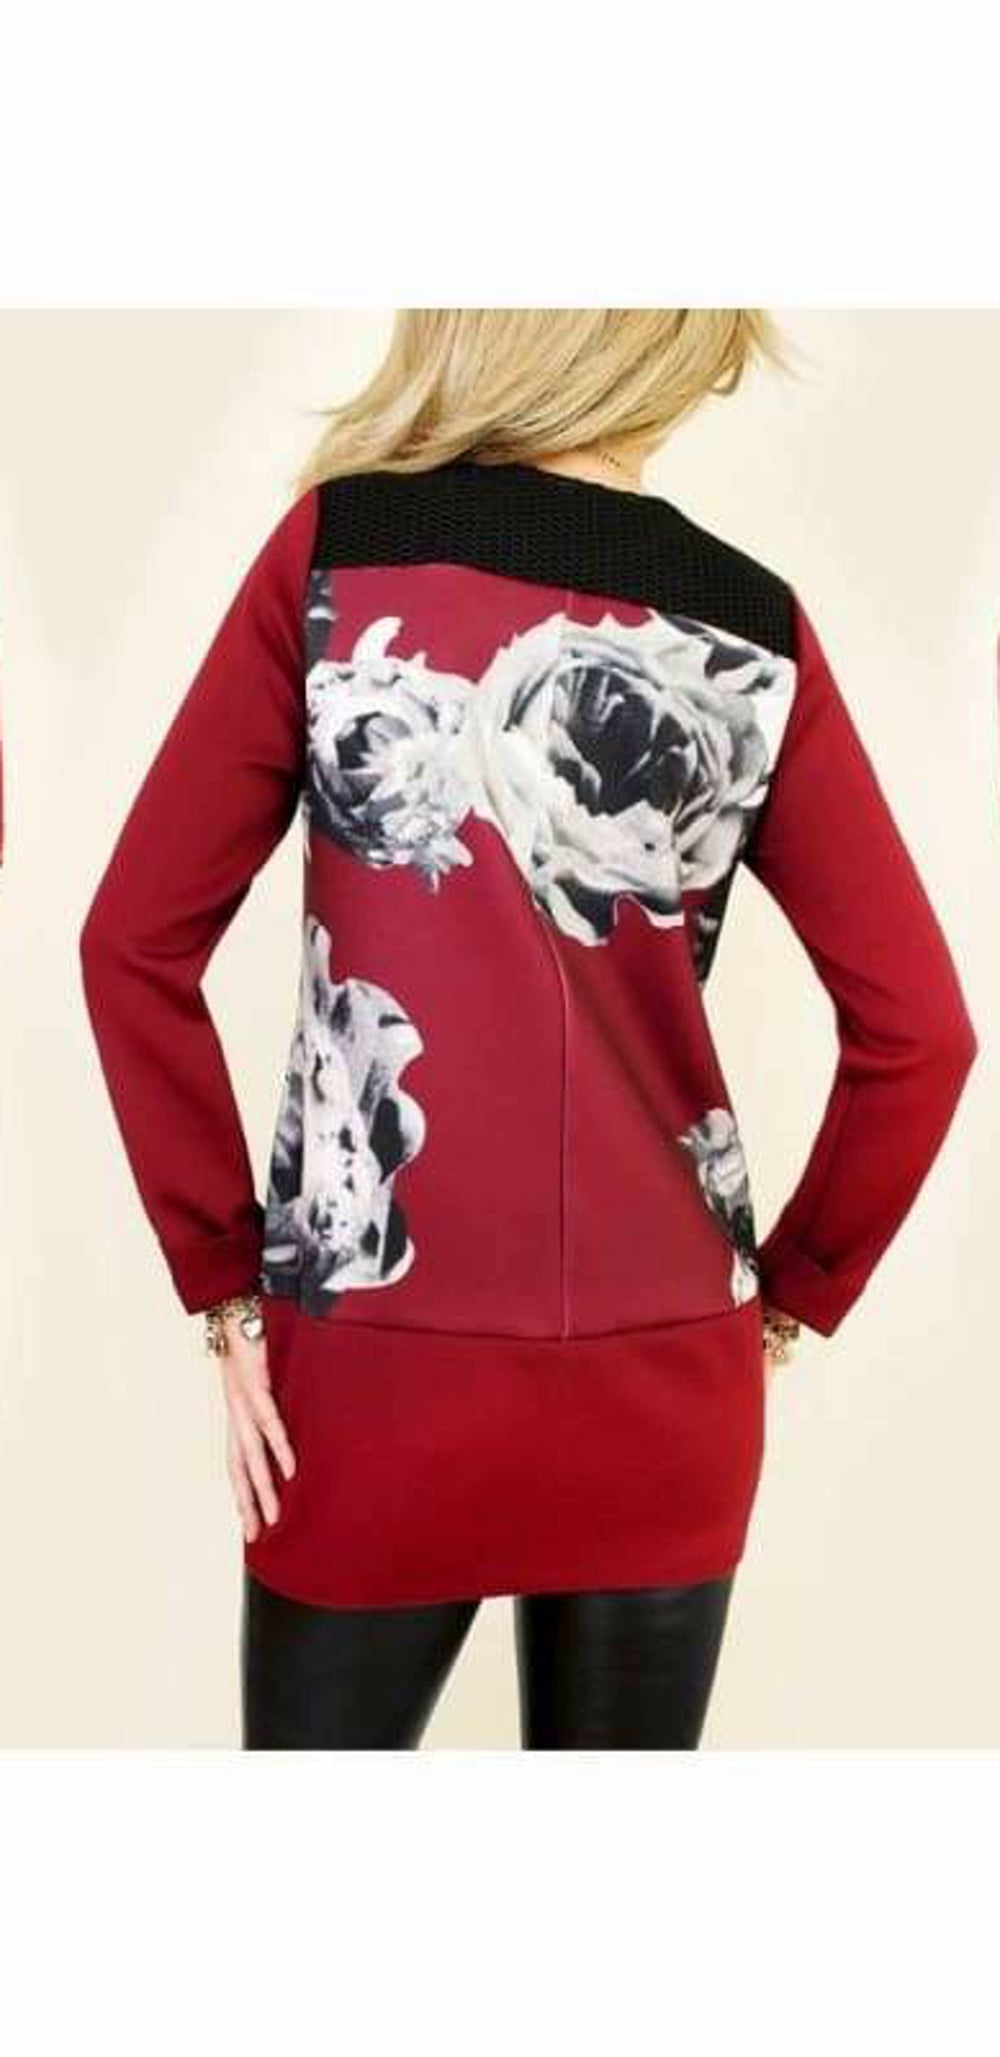 Coat with 3D Rose Effect - Red